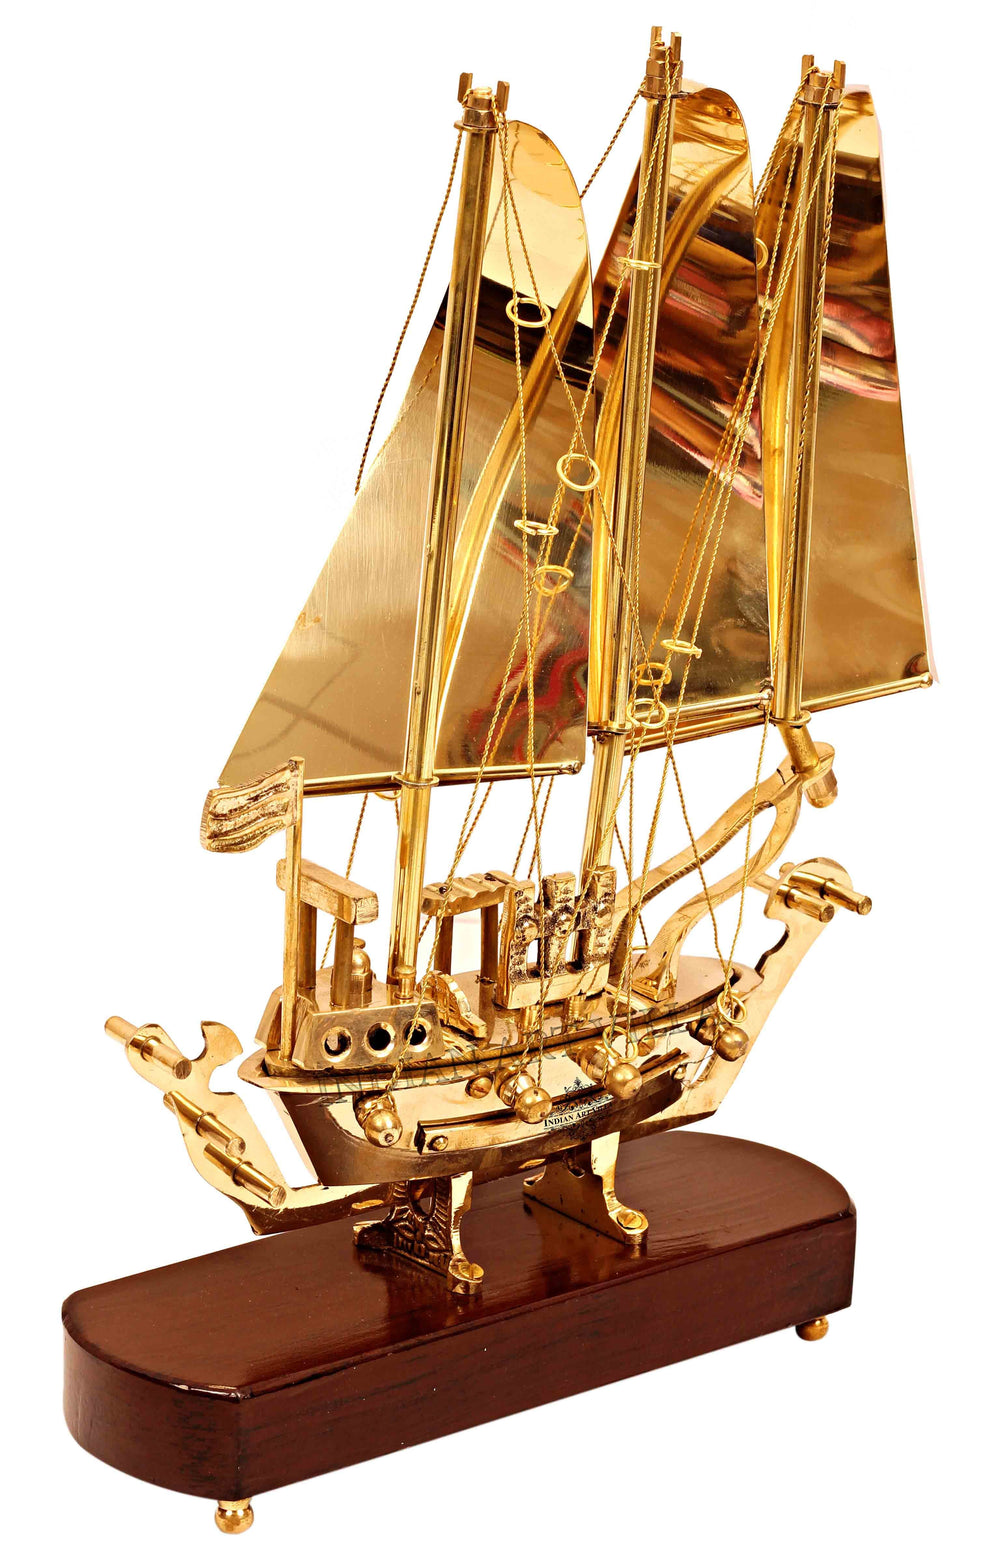 Brass Ship with Wooden base, Showpiece Item, Perfect for Home Decoration and Gifting Home Accent HR-8